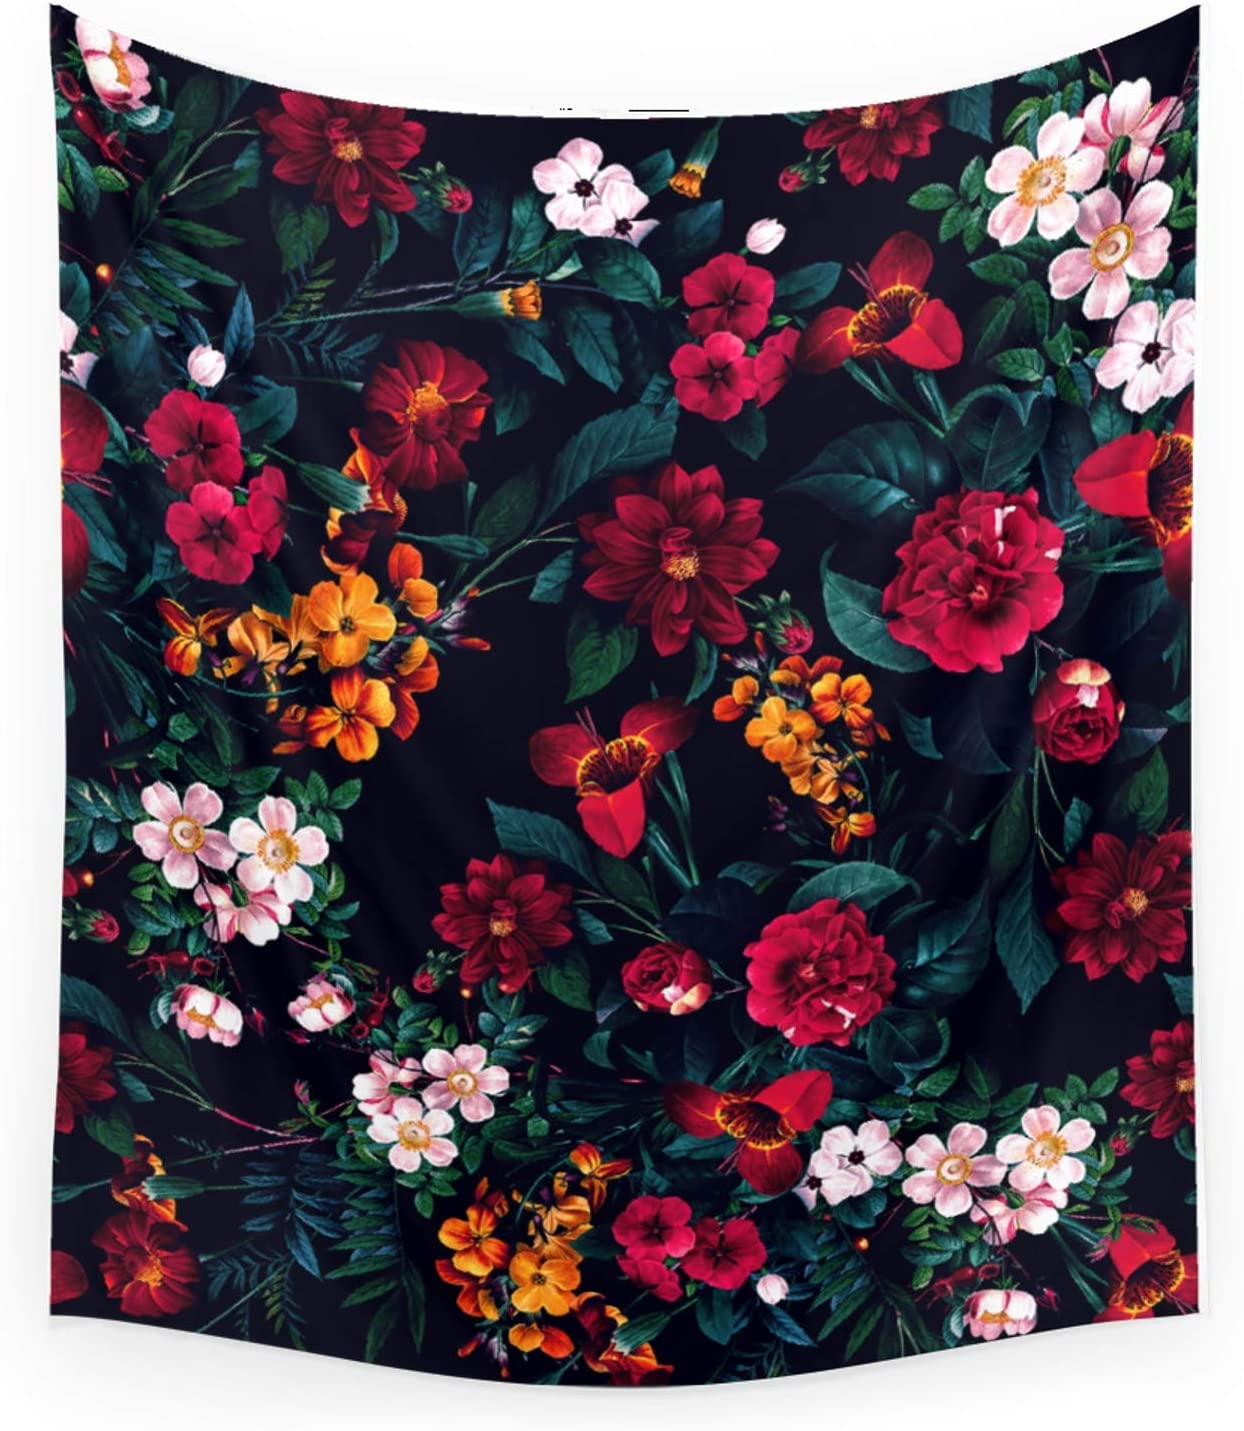 Society6 The Midnight Garden by Super sale period limited Hanging Wall Rizapeker Max 73% OFF on Tapest